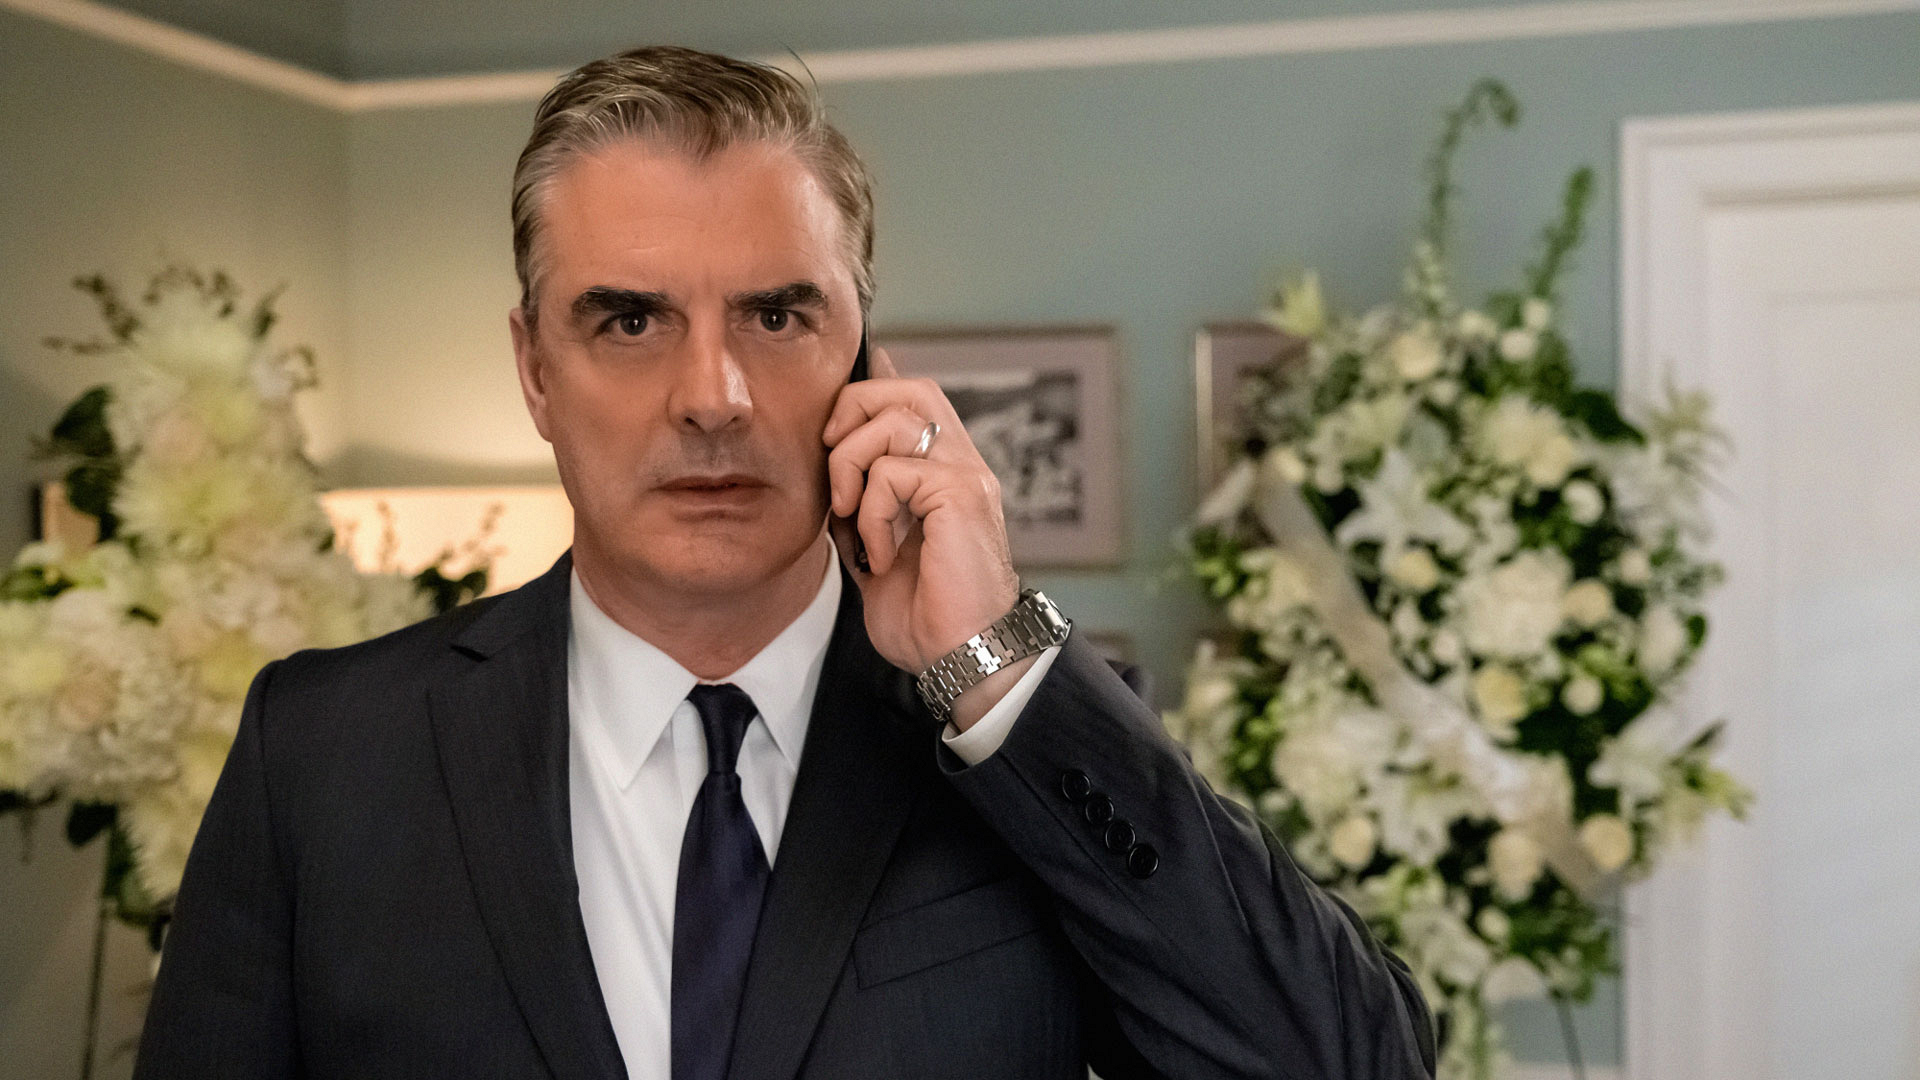 Peter Florrick receives a phone call.